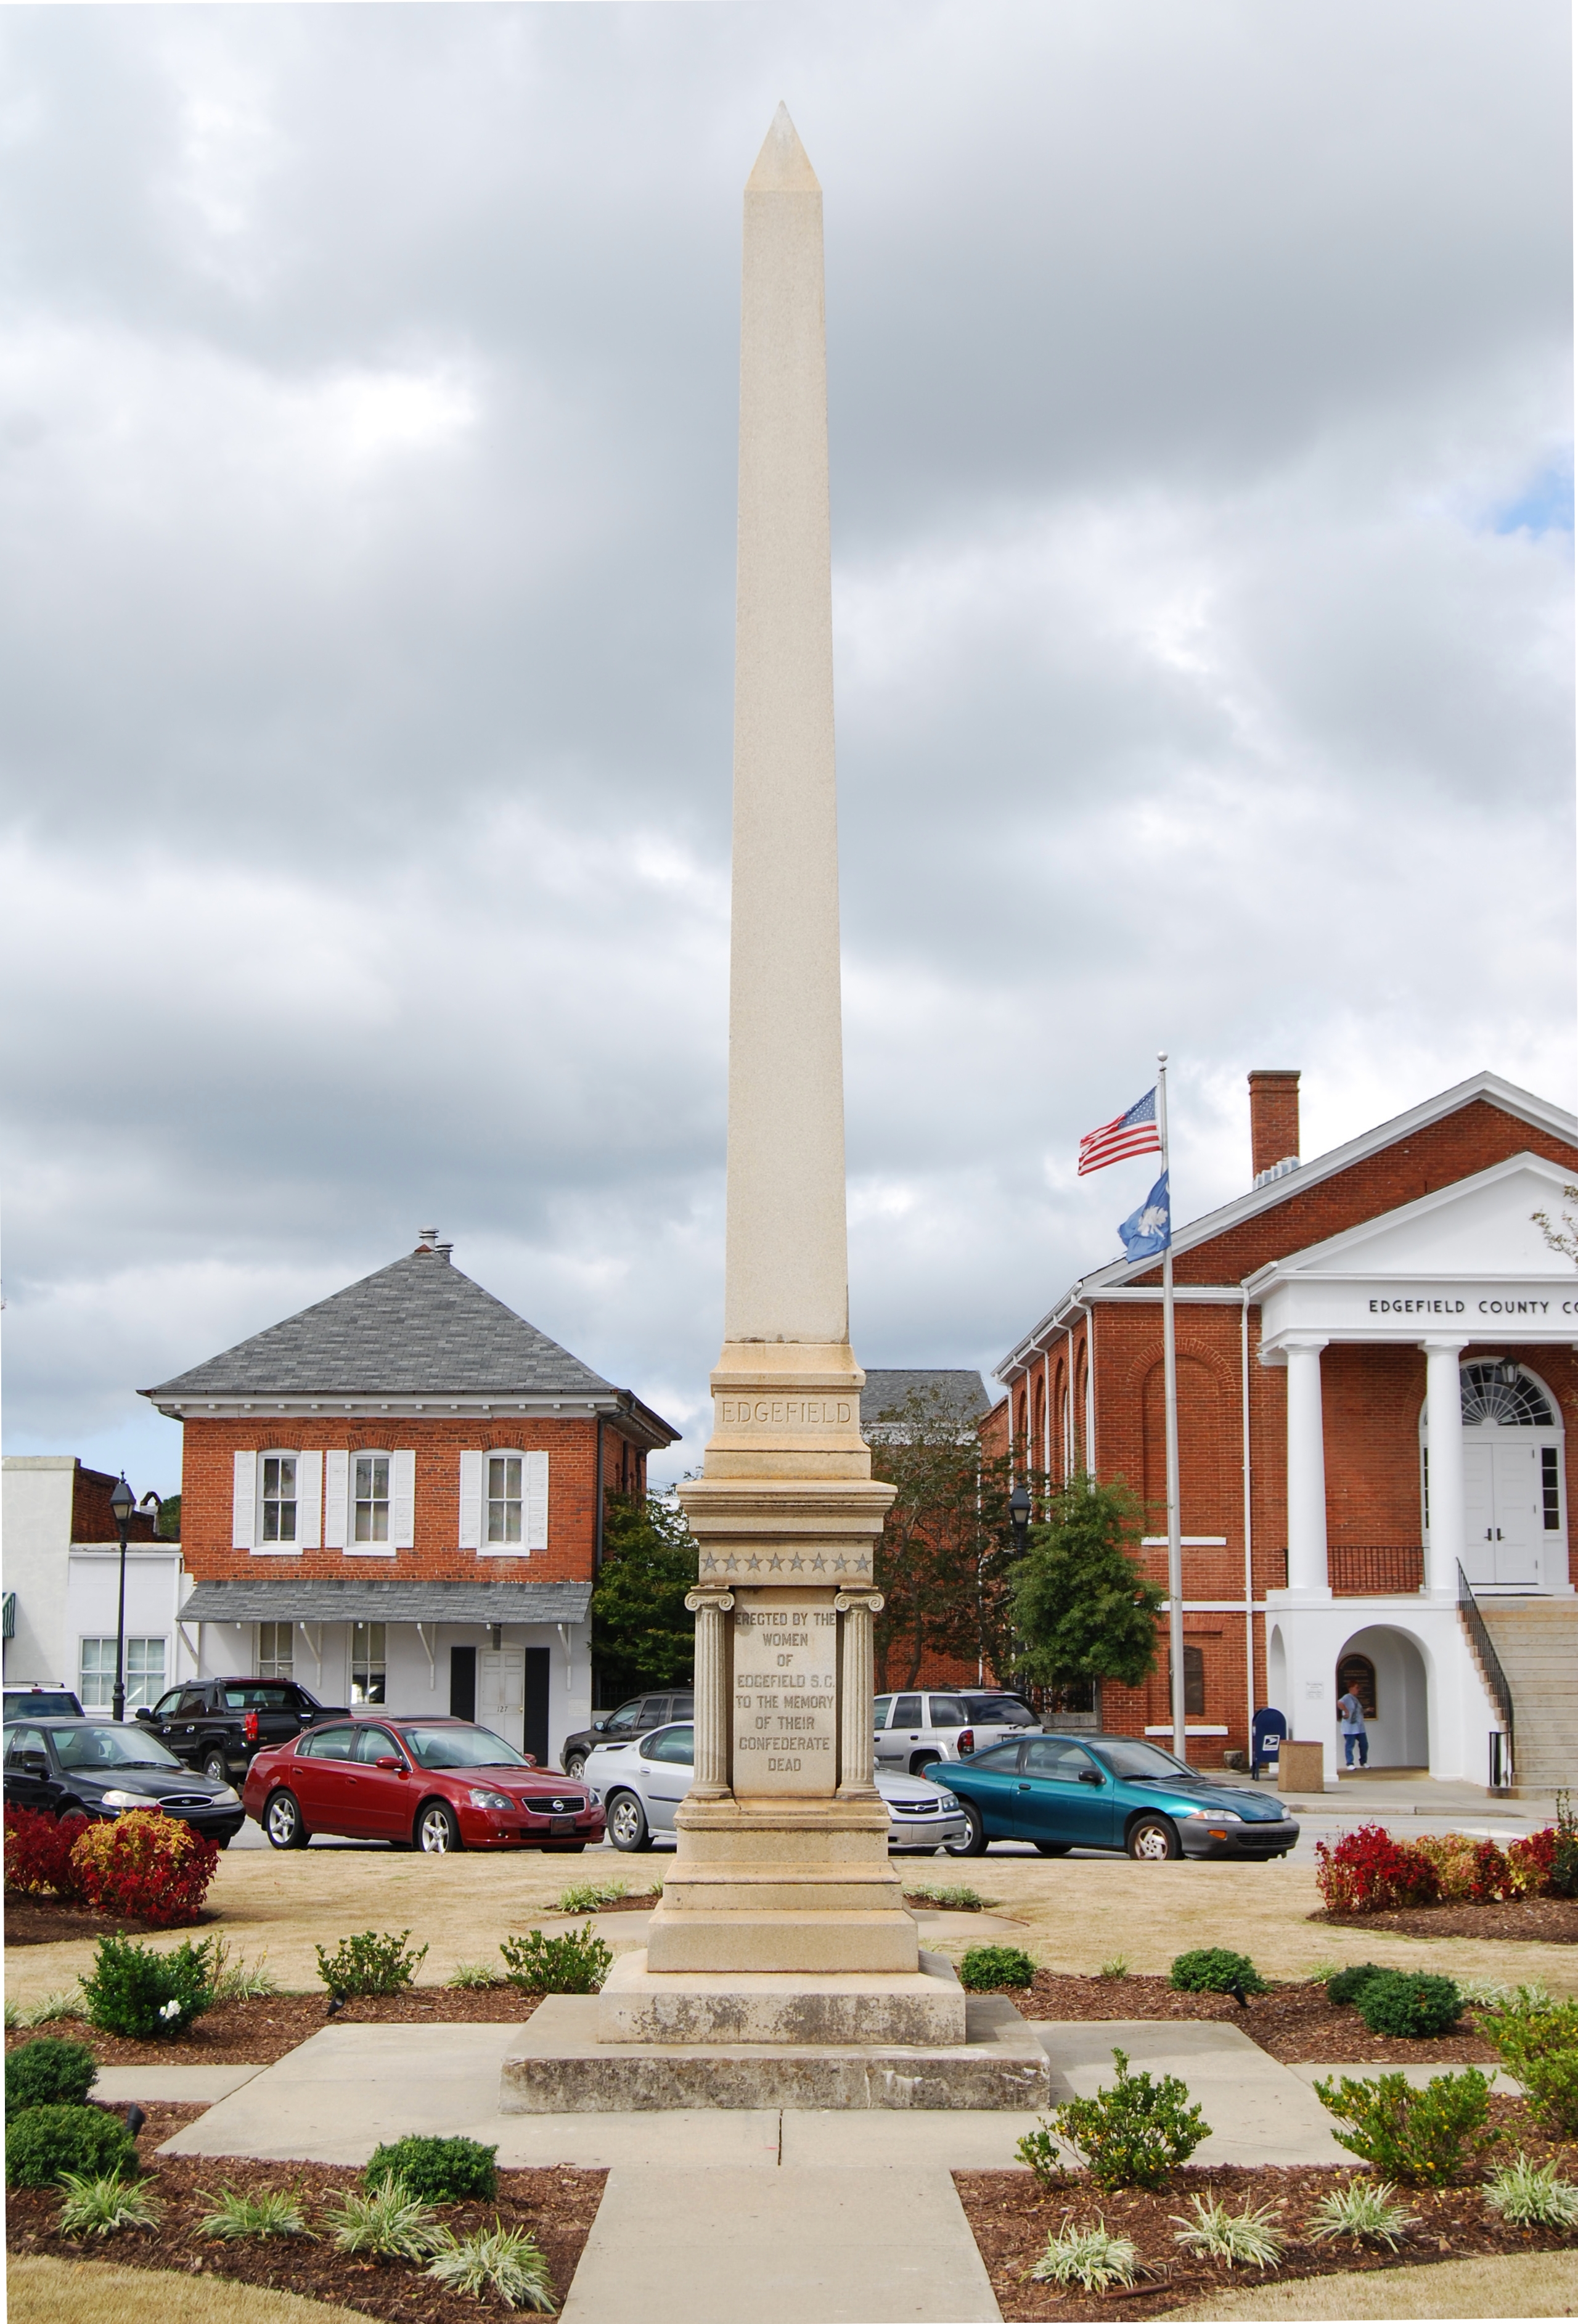 Edgefield County Confederate Monument